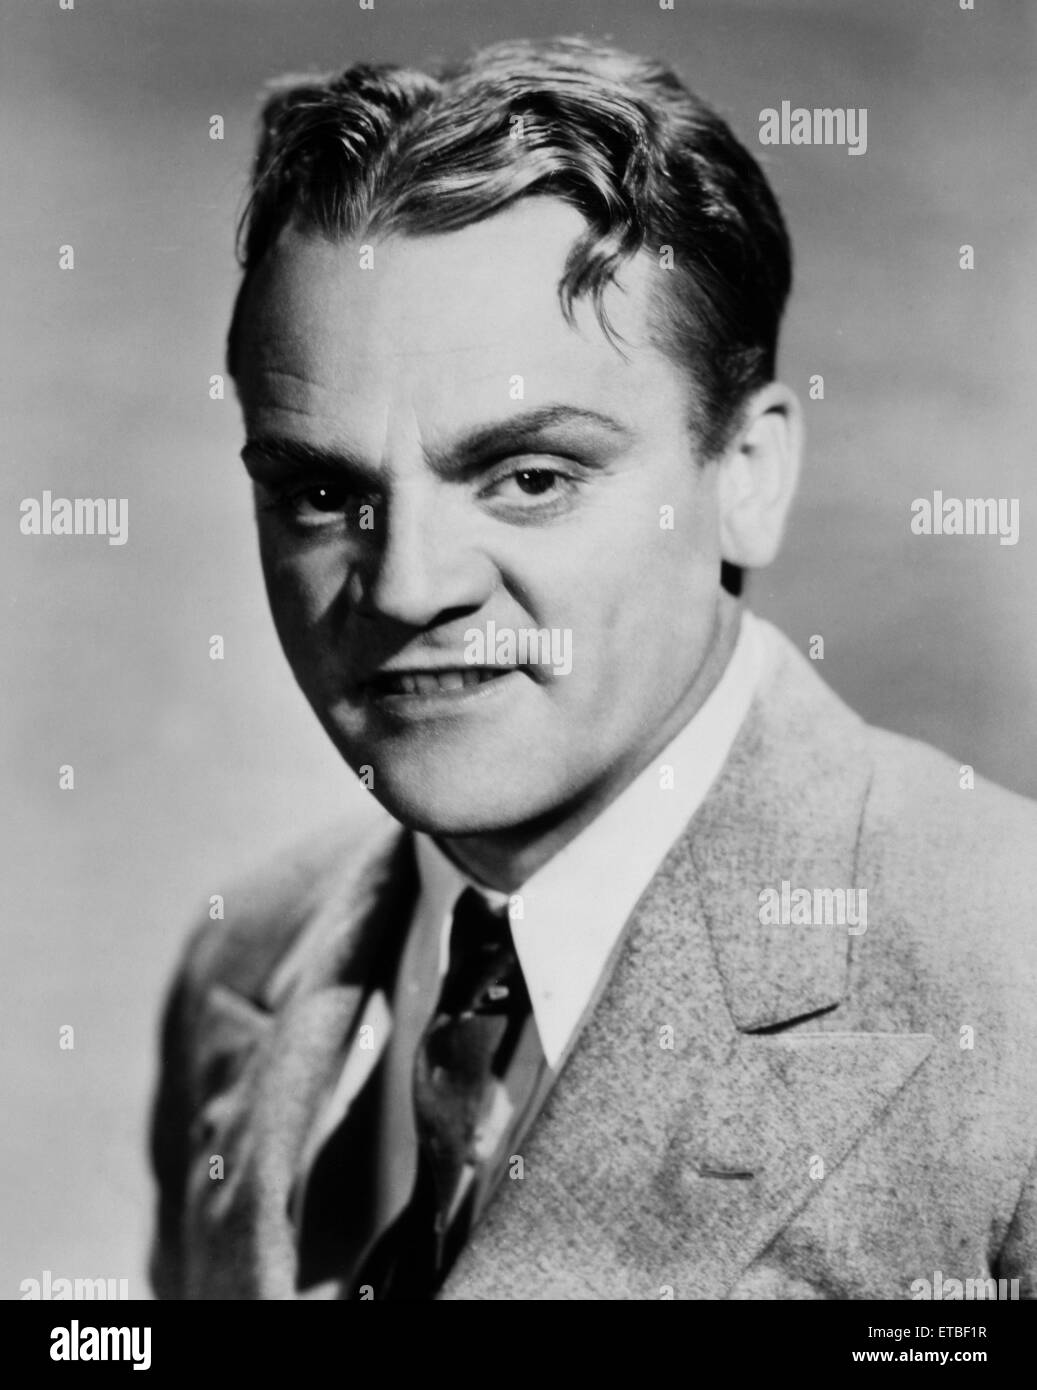 james cagney actorjames cagney rita hayworth, james cagney height, james cagney yankee doodle dandy, james cagney and joan blondell, james cagney and bob hope, james cagney 1935, james cagney jr, james cagney documentary, james cagney filmleri izle, james cagney actor, james cagney movies, james cagney imdb, james cagney you dirty rat, james cagney public enemy, james cagney wikipedia, james cagney top of the world, james cagney interview, james cagney dancing down stairs, james cagney ragtime, james cagney stairs